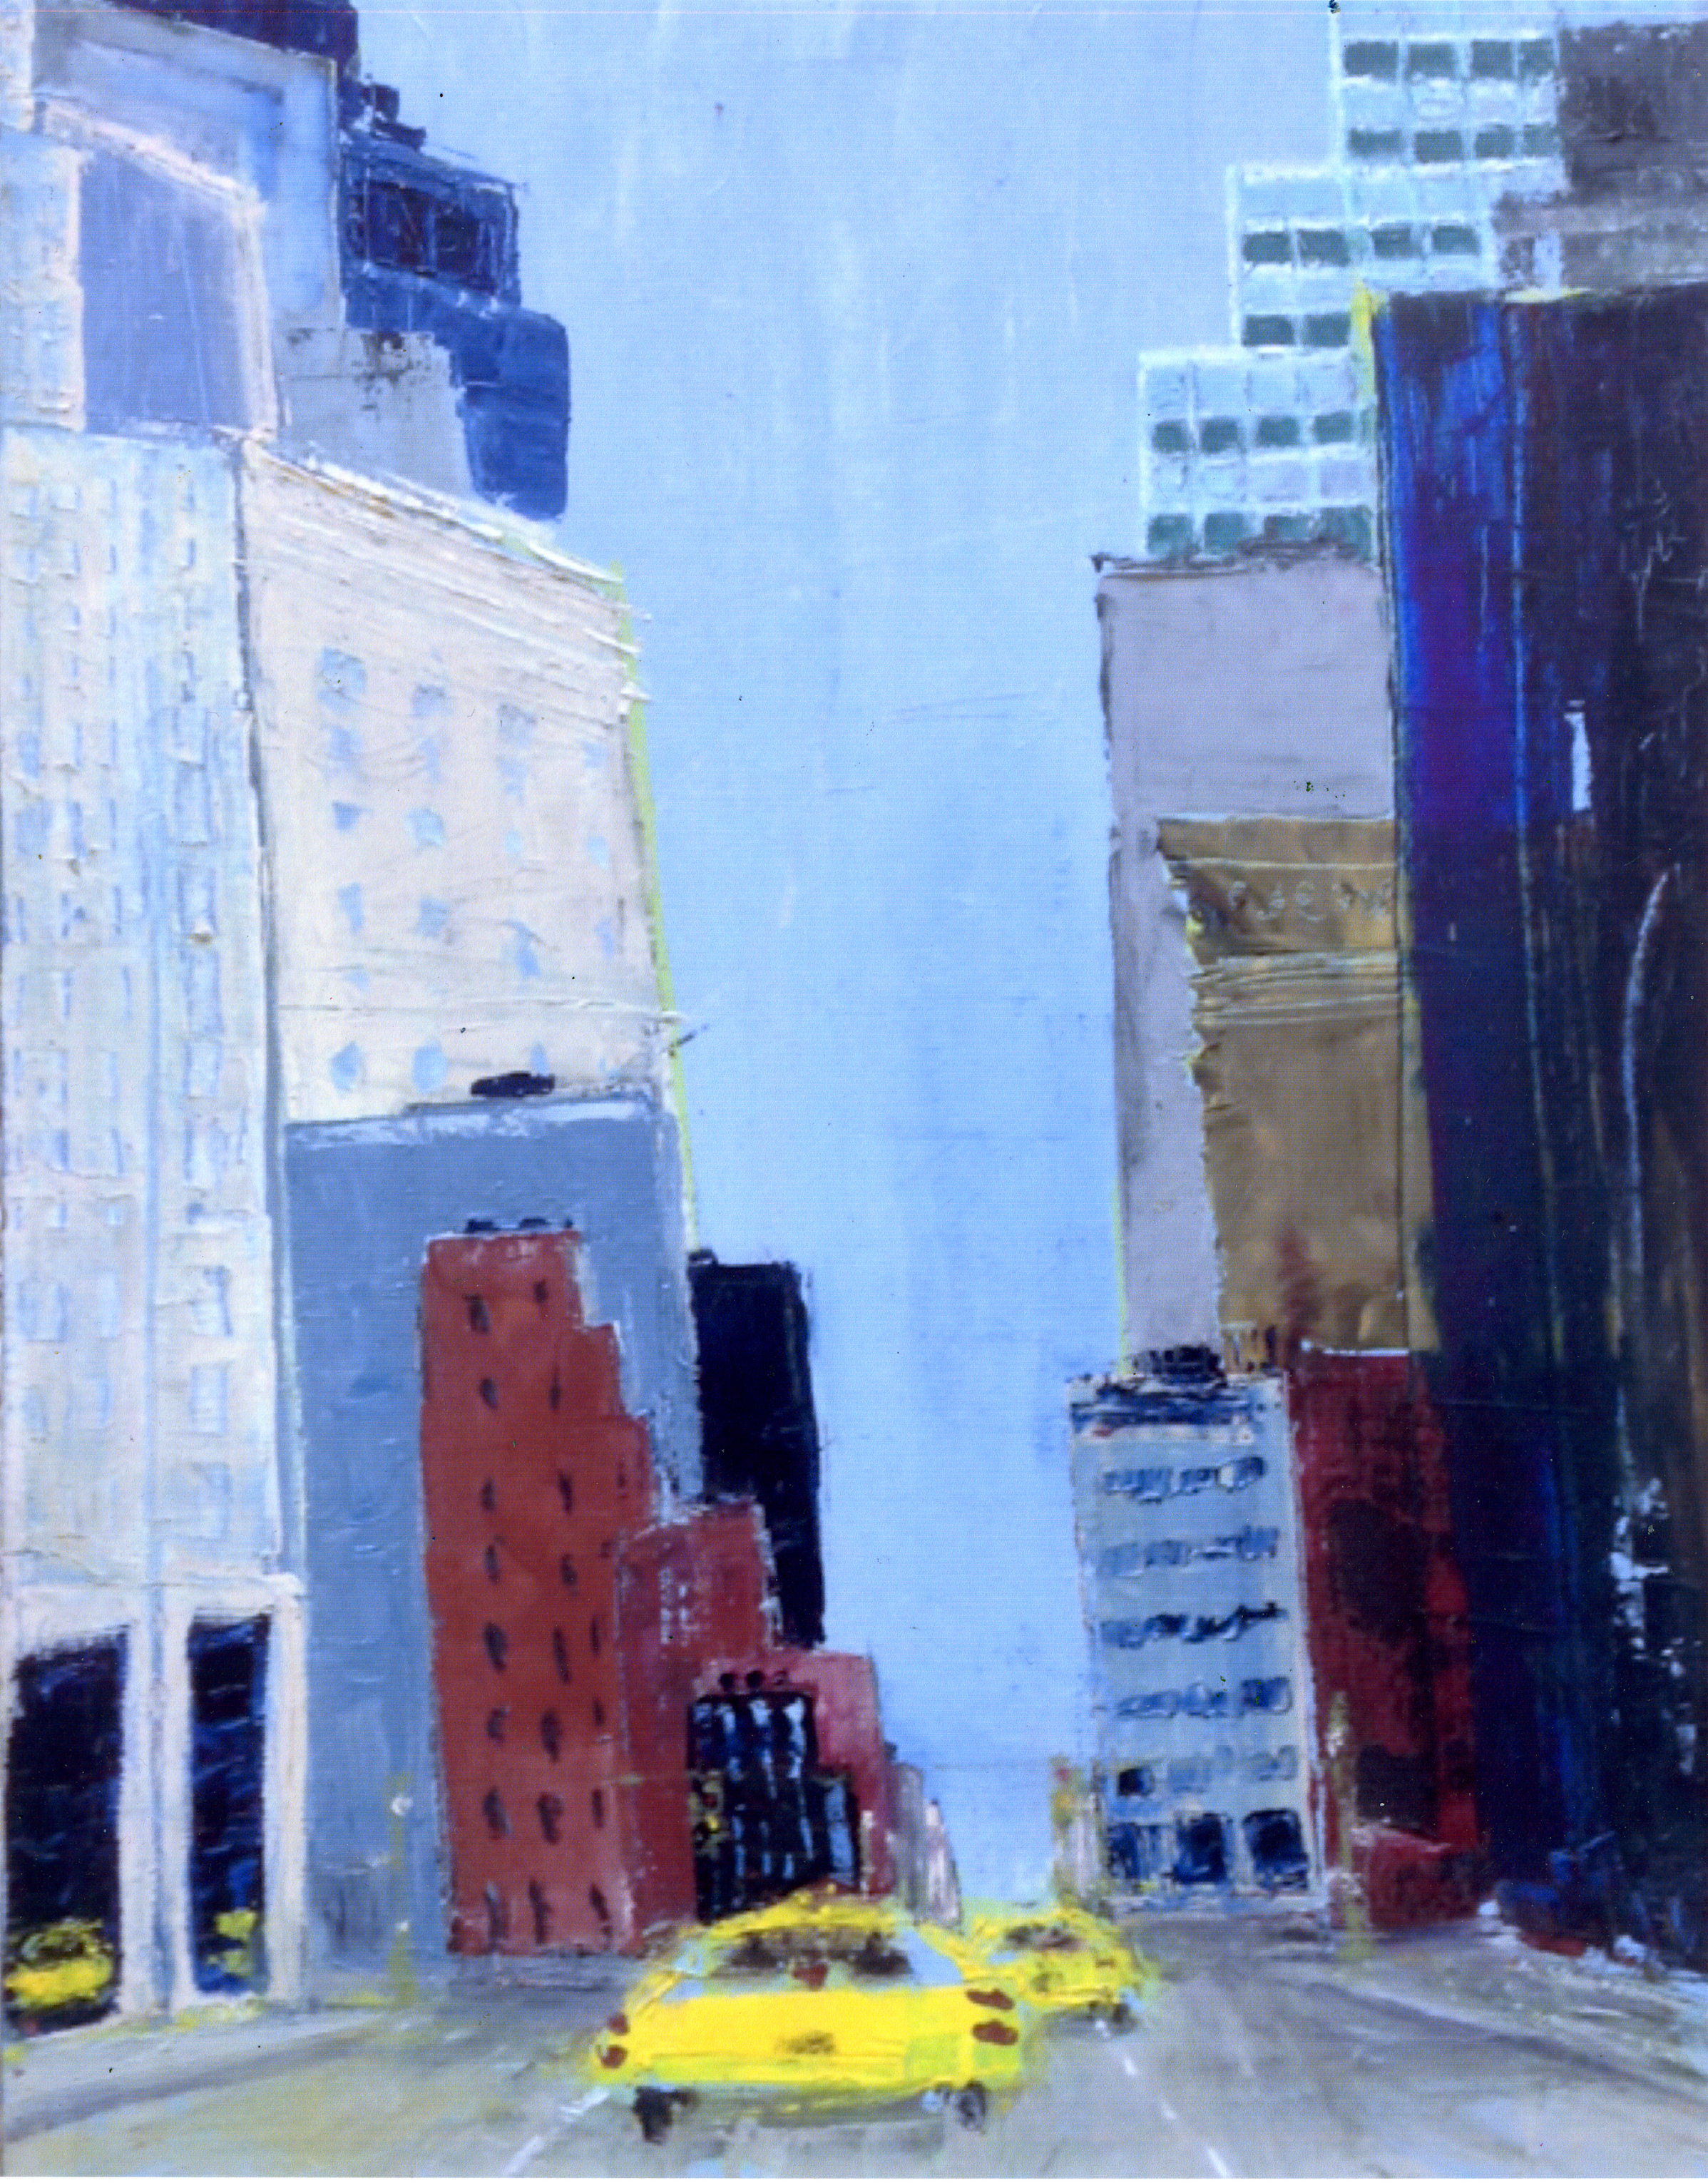 "Yellow Cabs on the Street   Oil on stretched canvas  24"" x 18"" x 3/4""  $885  Click to Enlarge Image   Inquire."